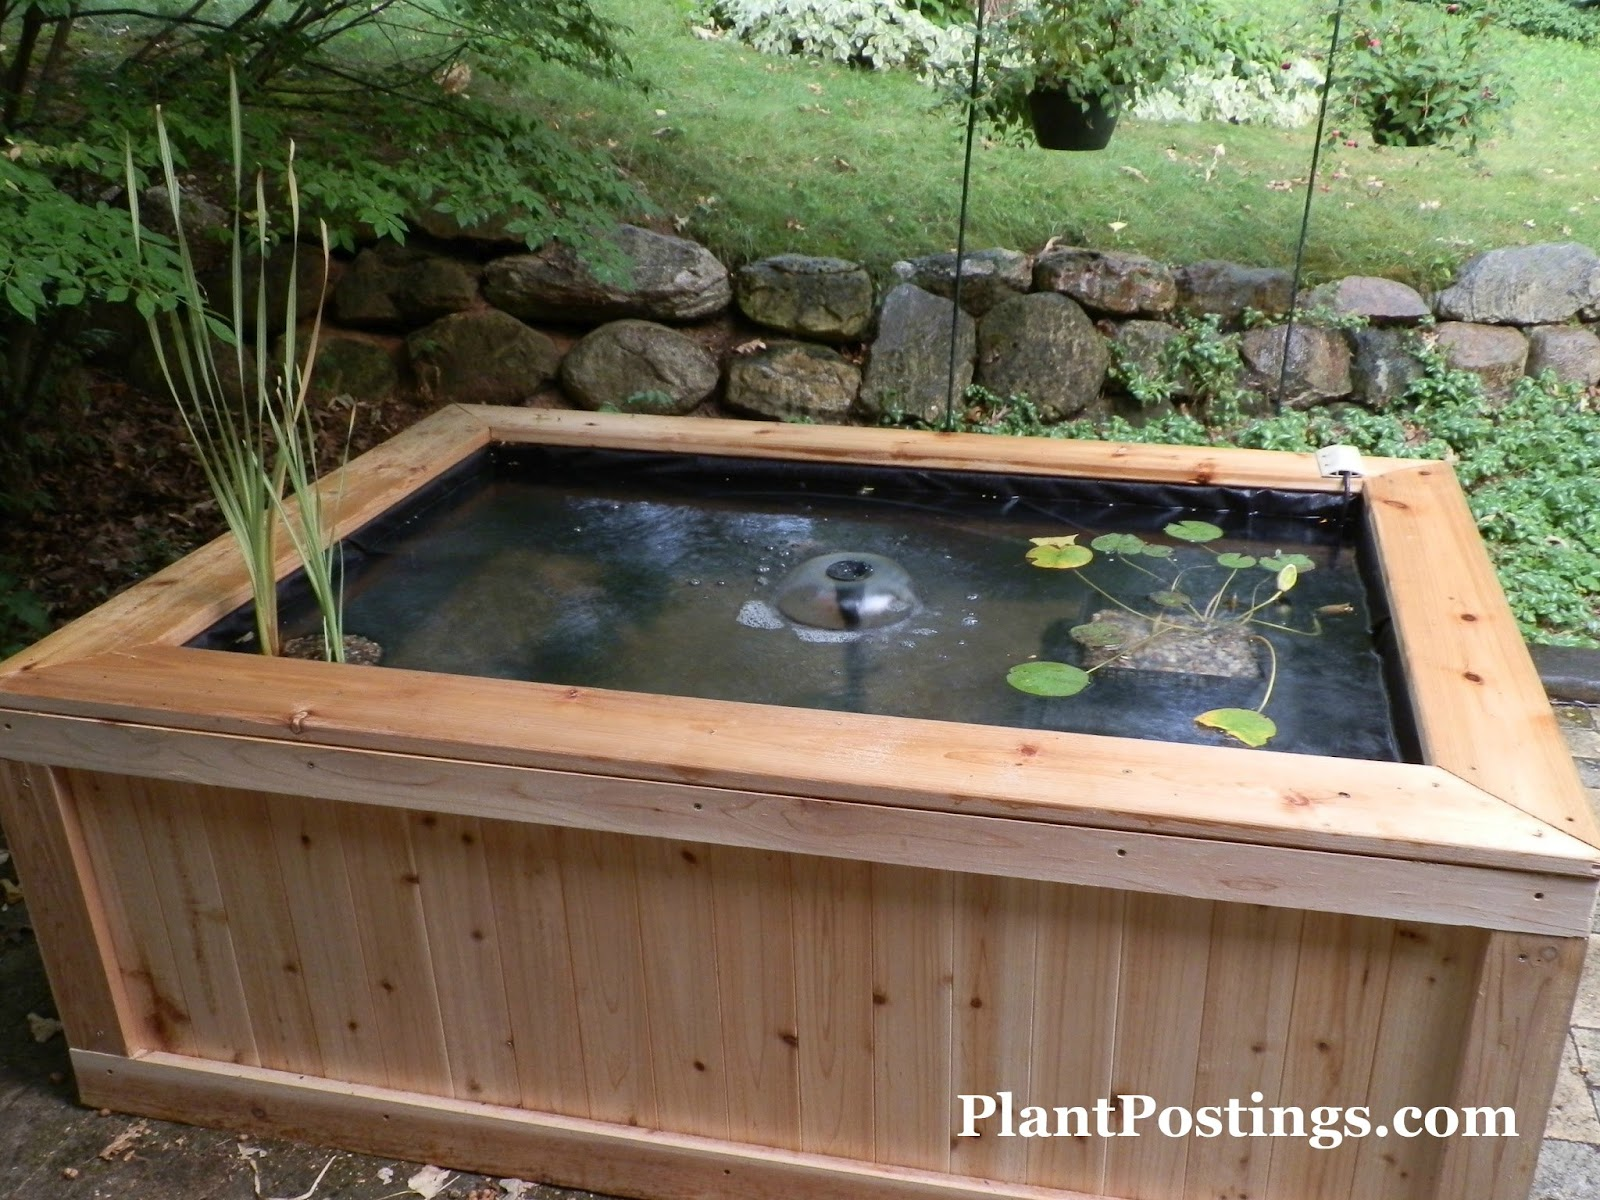 Plantpostings how to make an above ground pond for Wooden koi pond construction